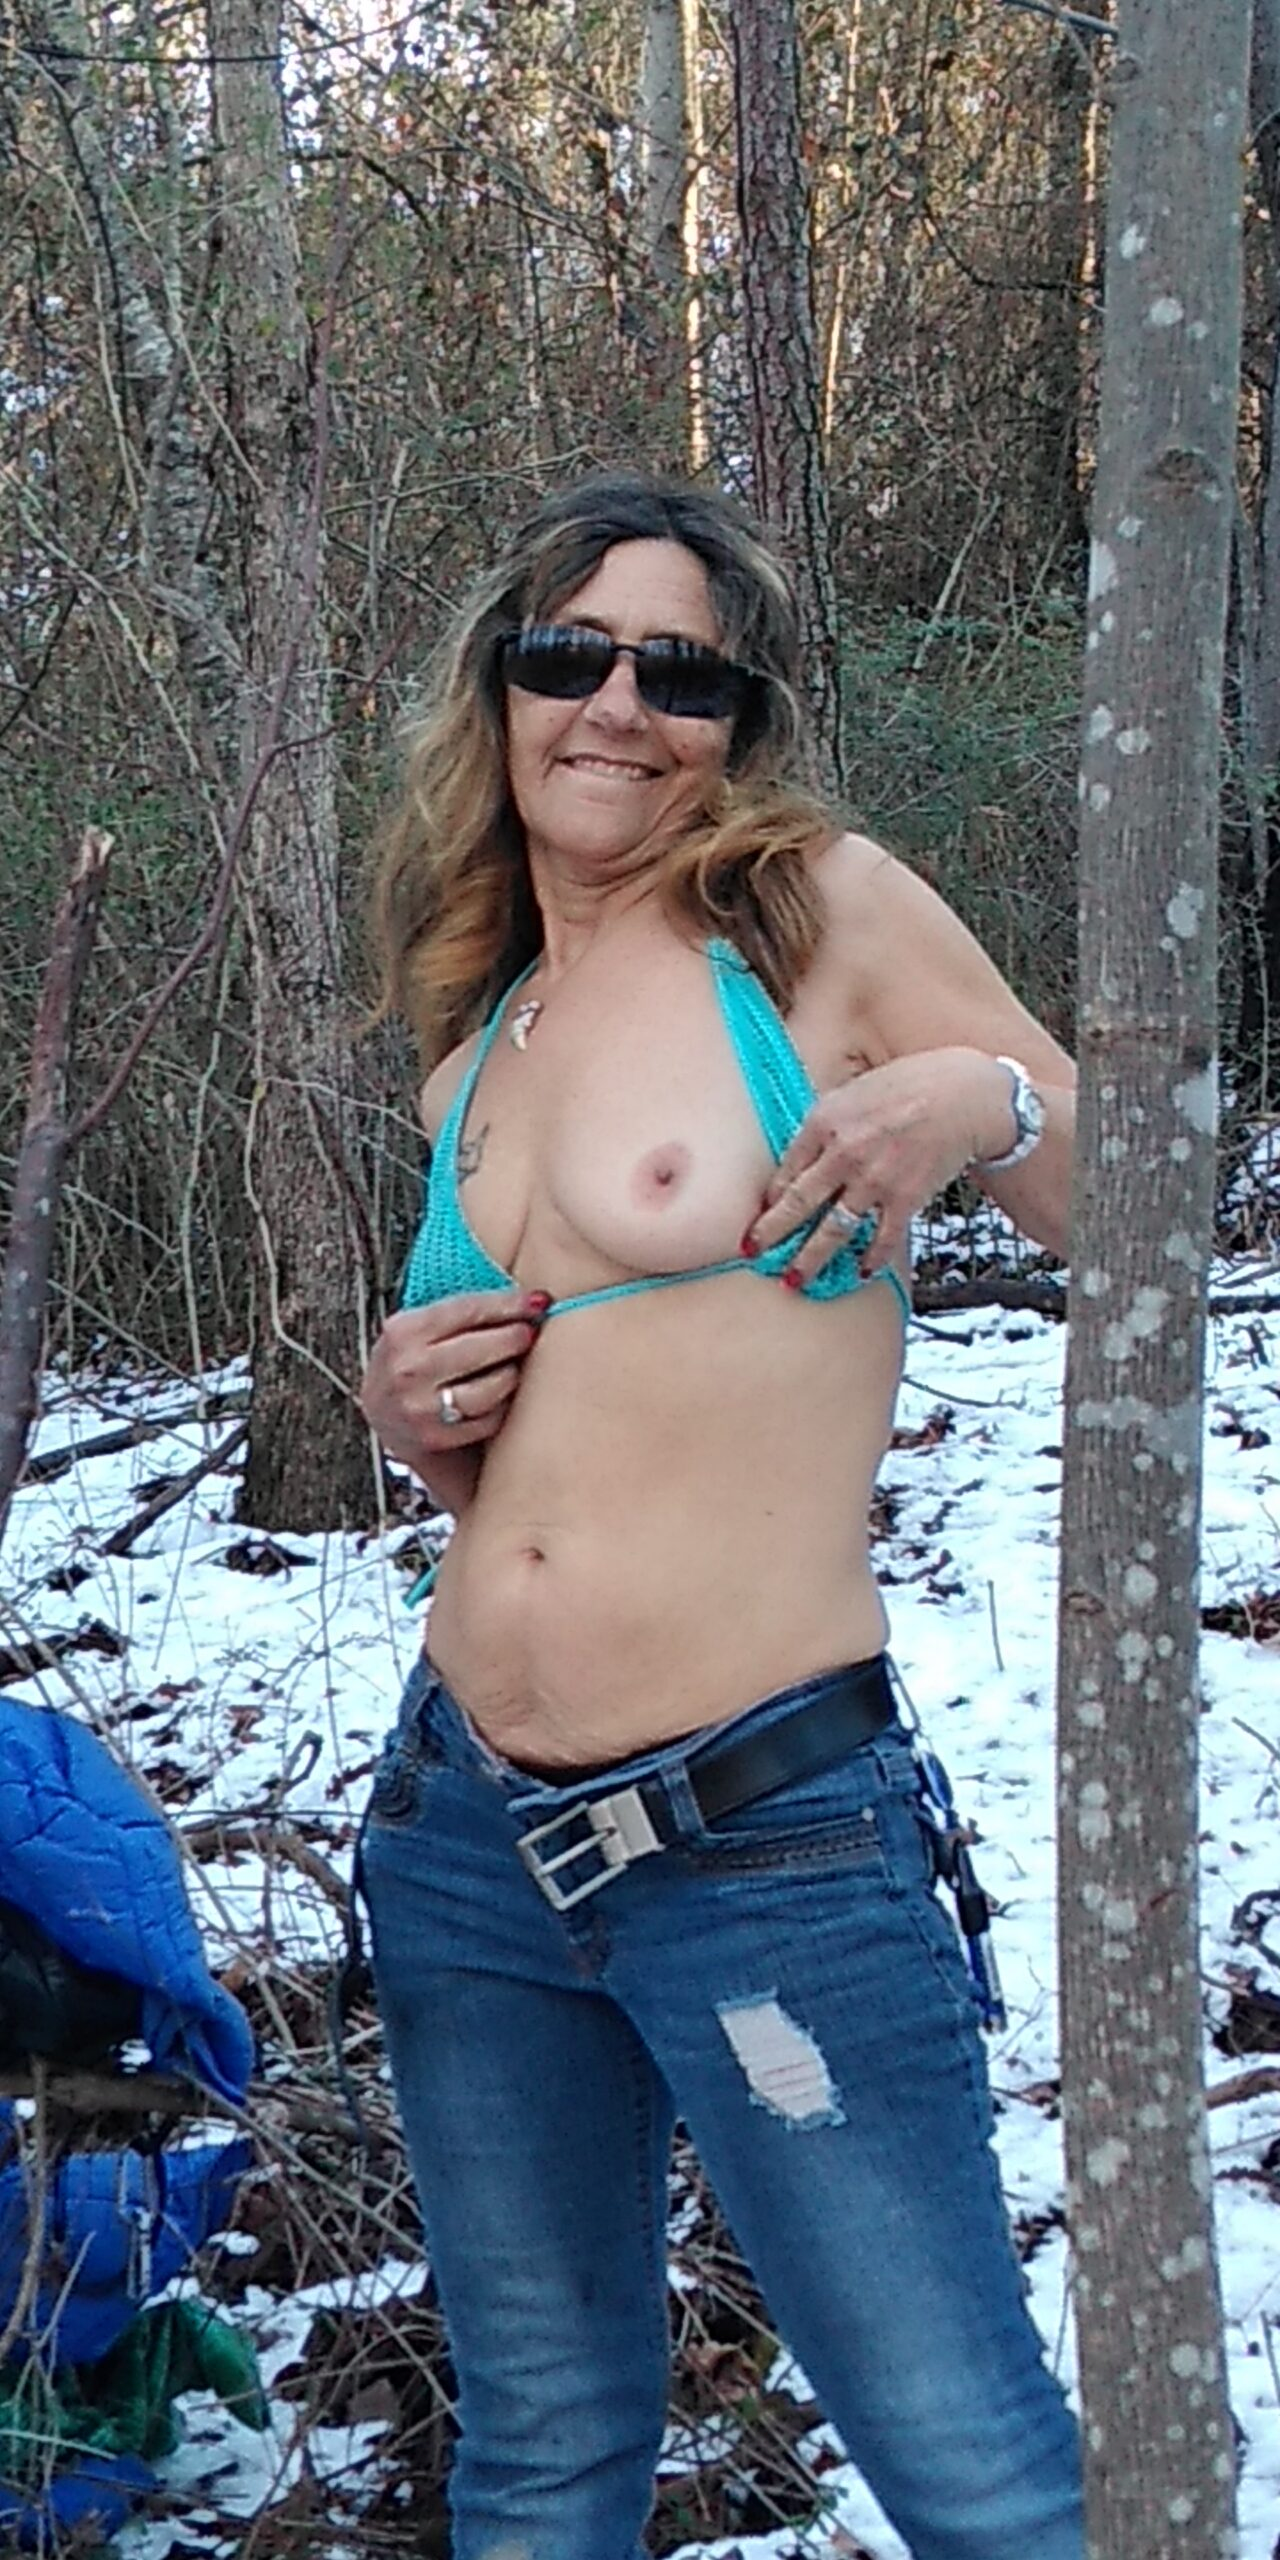 Beautiful mature boob Ready for summer real nudity public flashing mature howife boobs flash